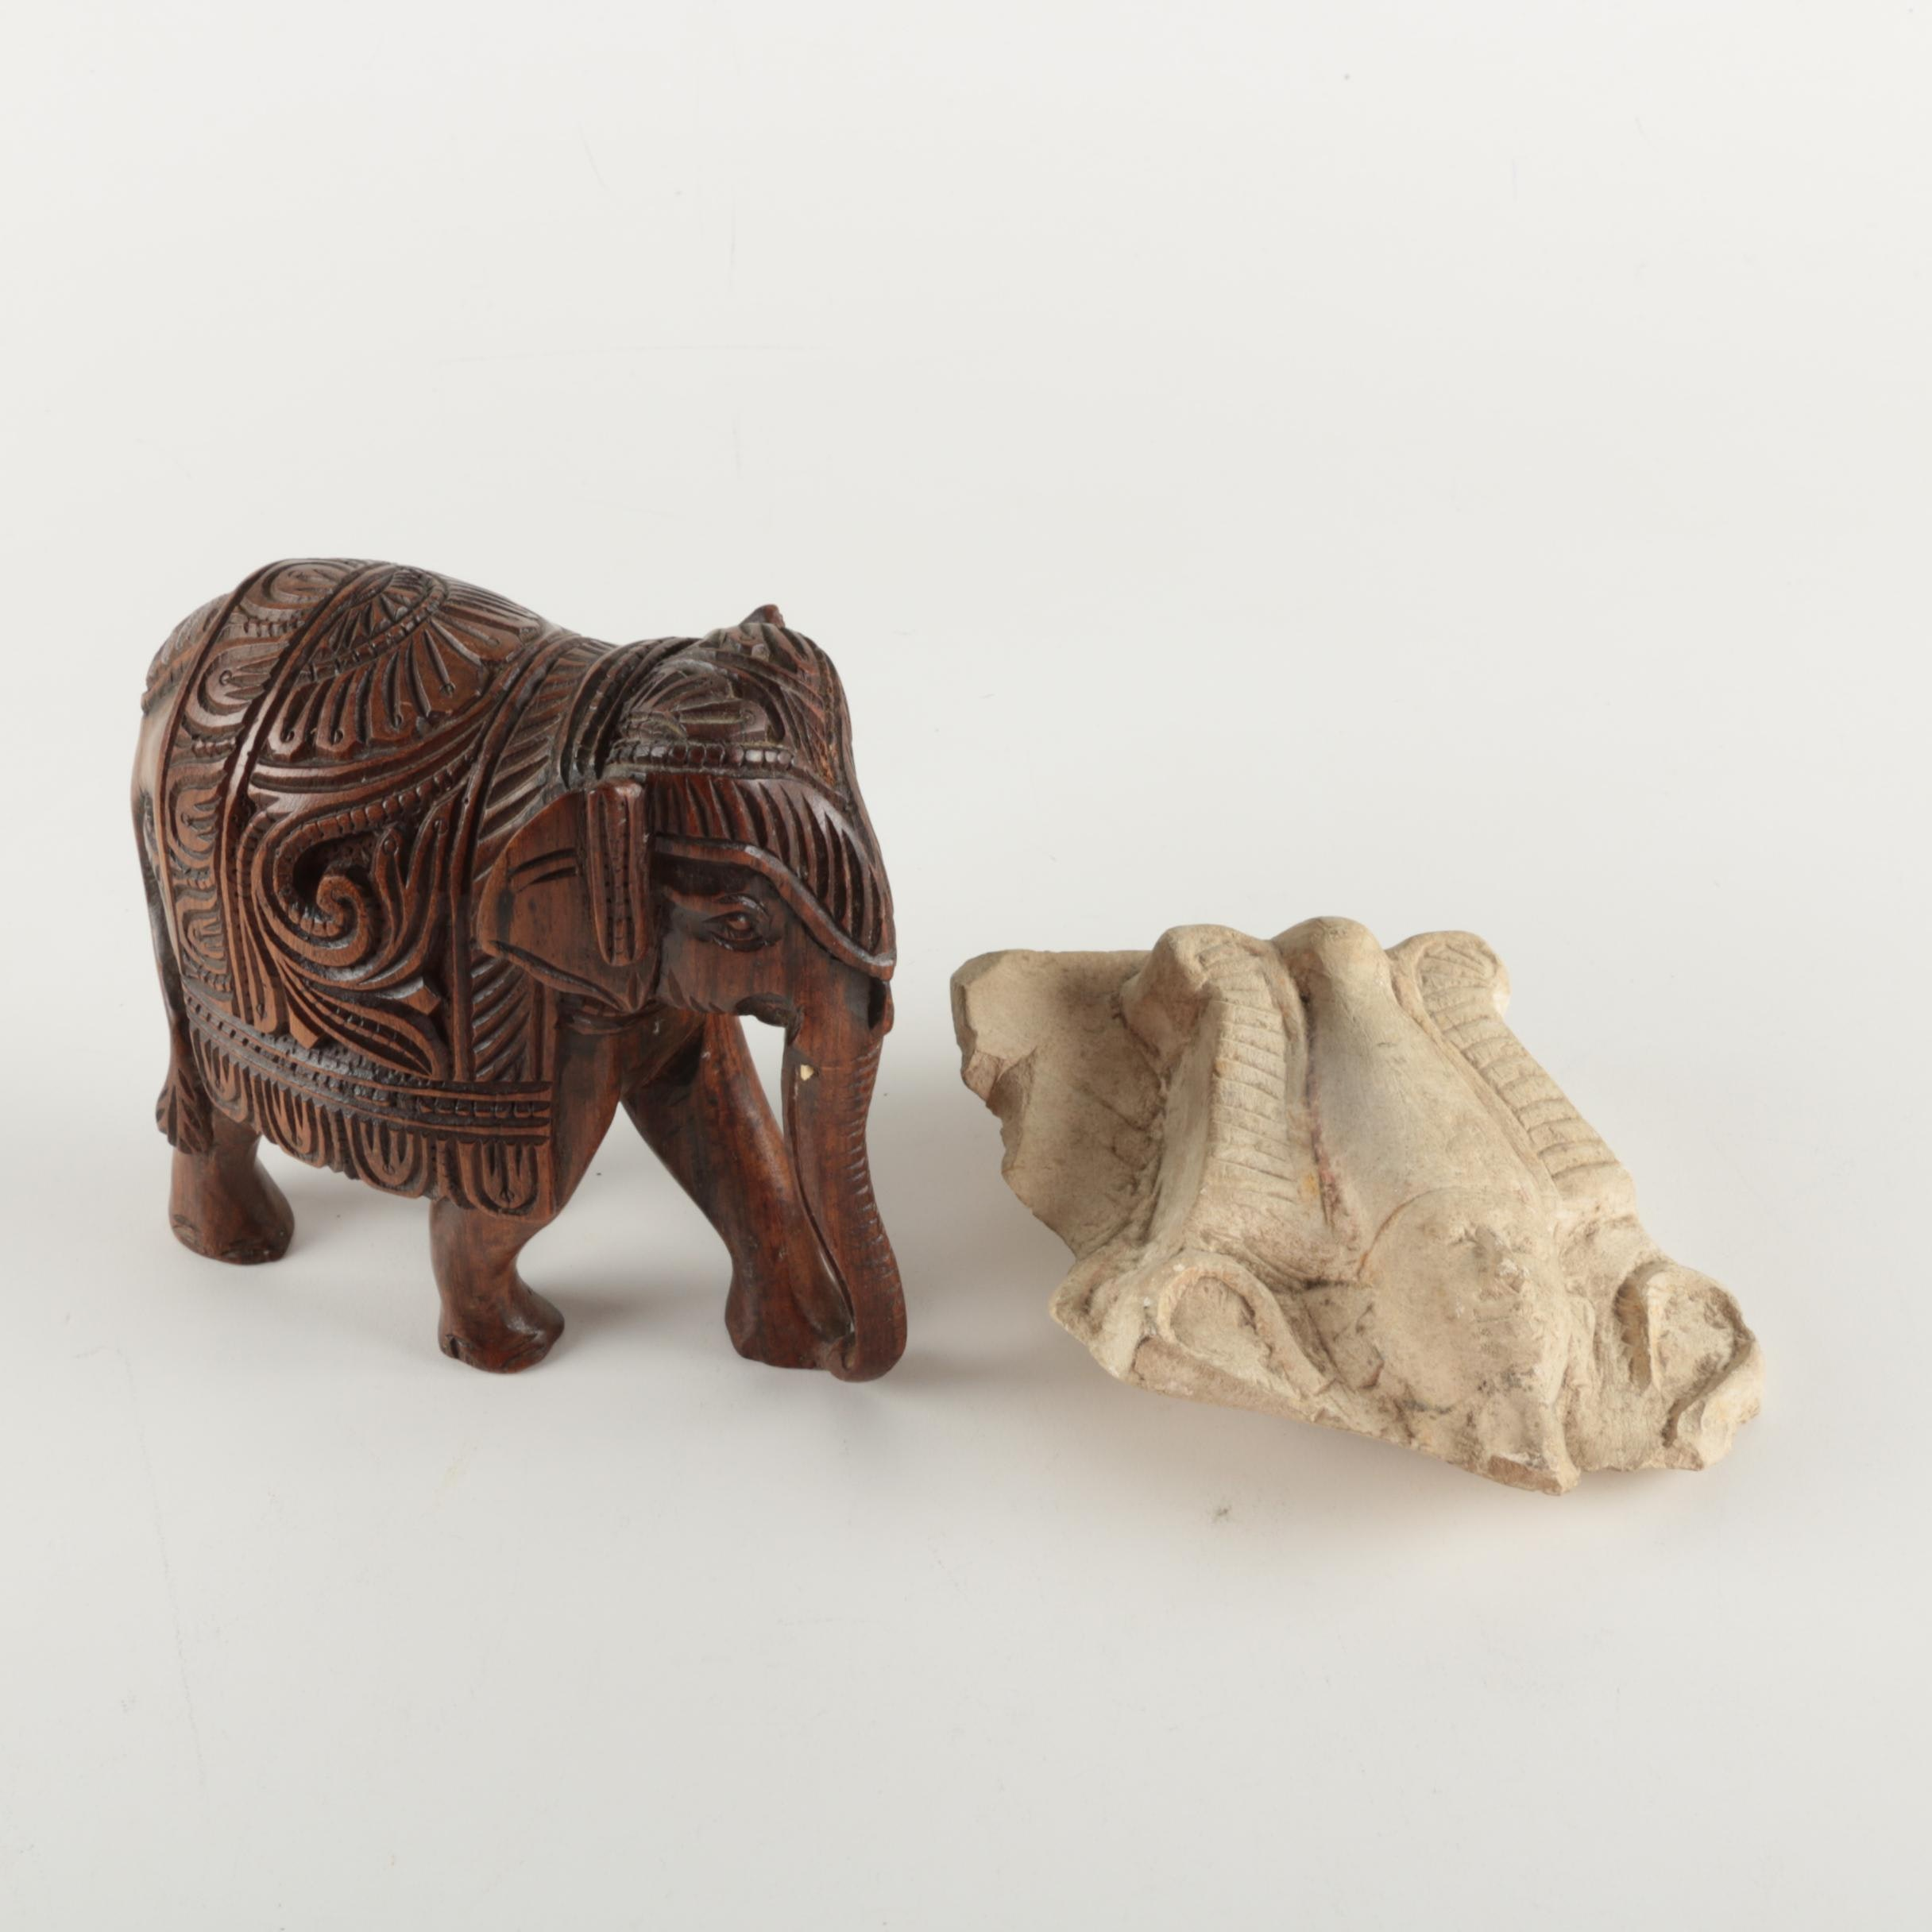 Carved Wood Elephant and Egyptian Inspired Ceramic Piece